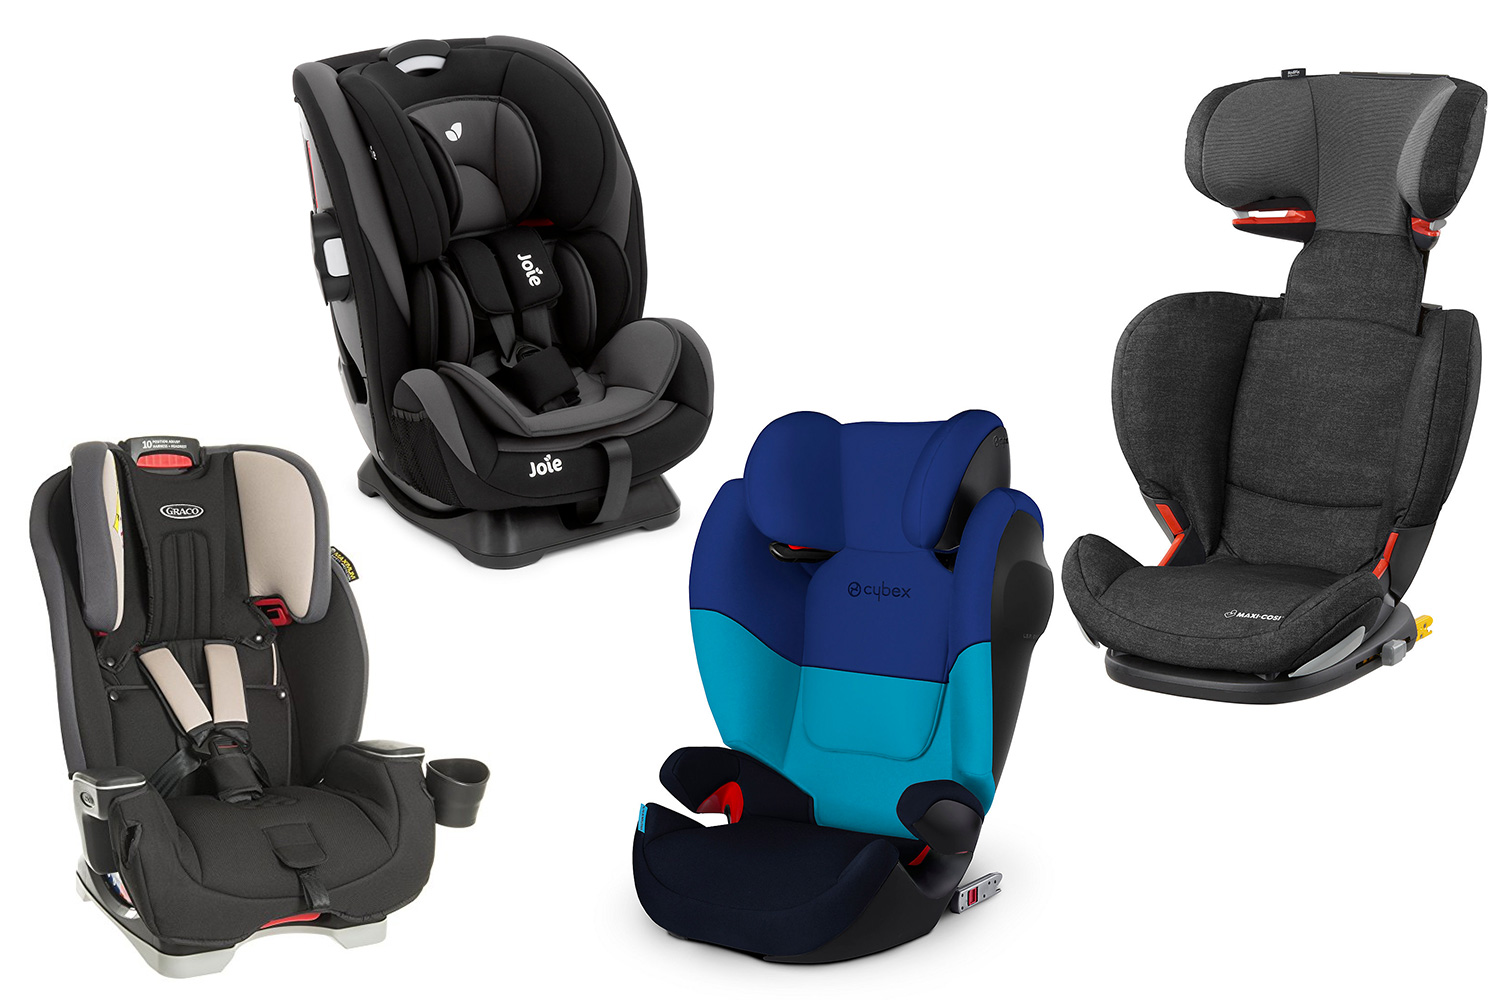 Joie Isofix Base Uk Best Car Seats 2019 The Sun Uk